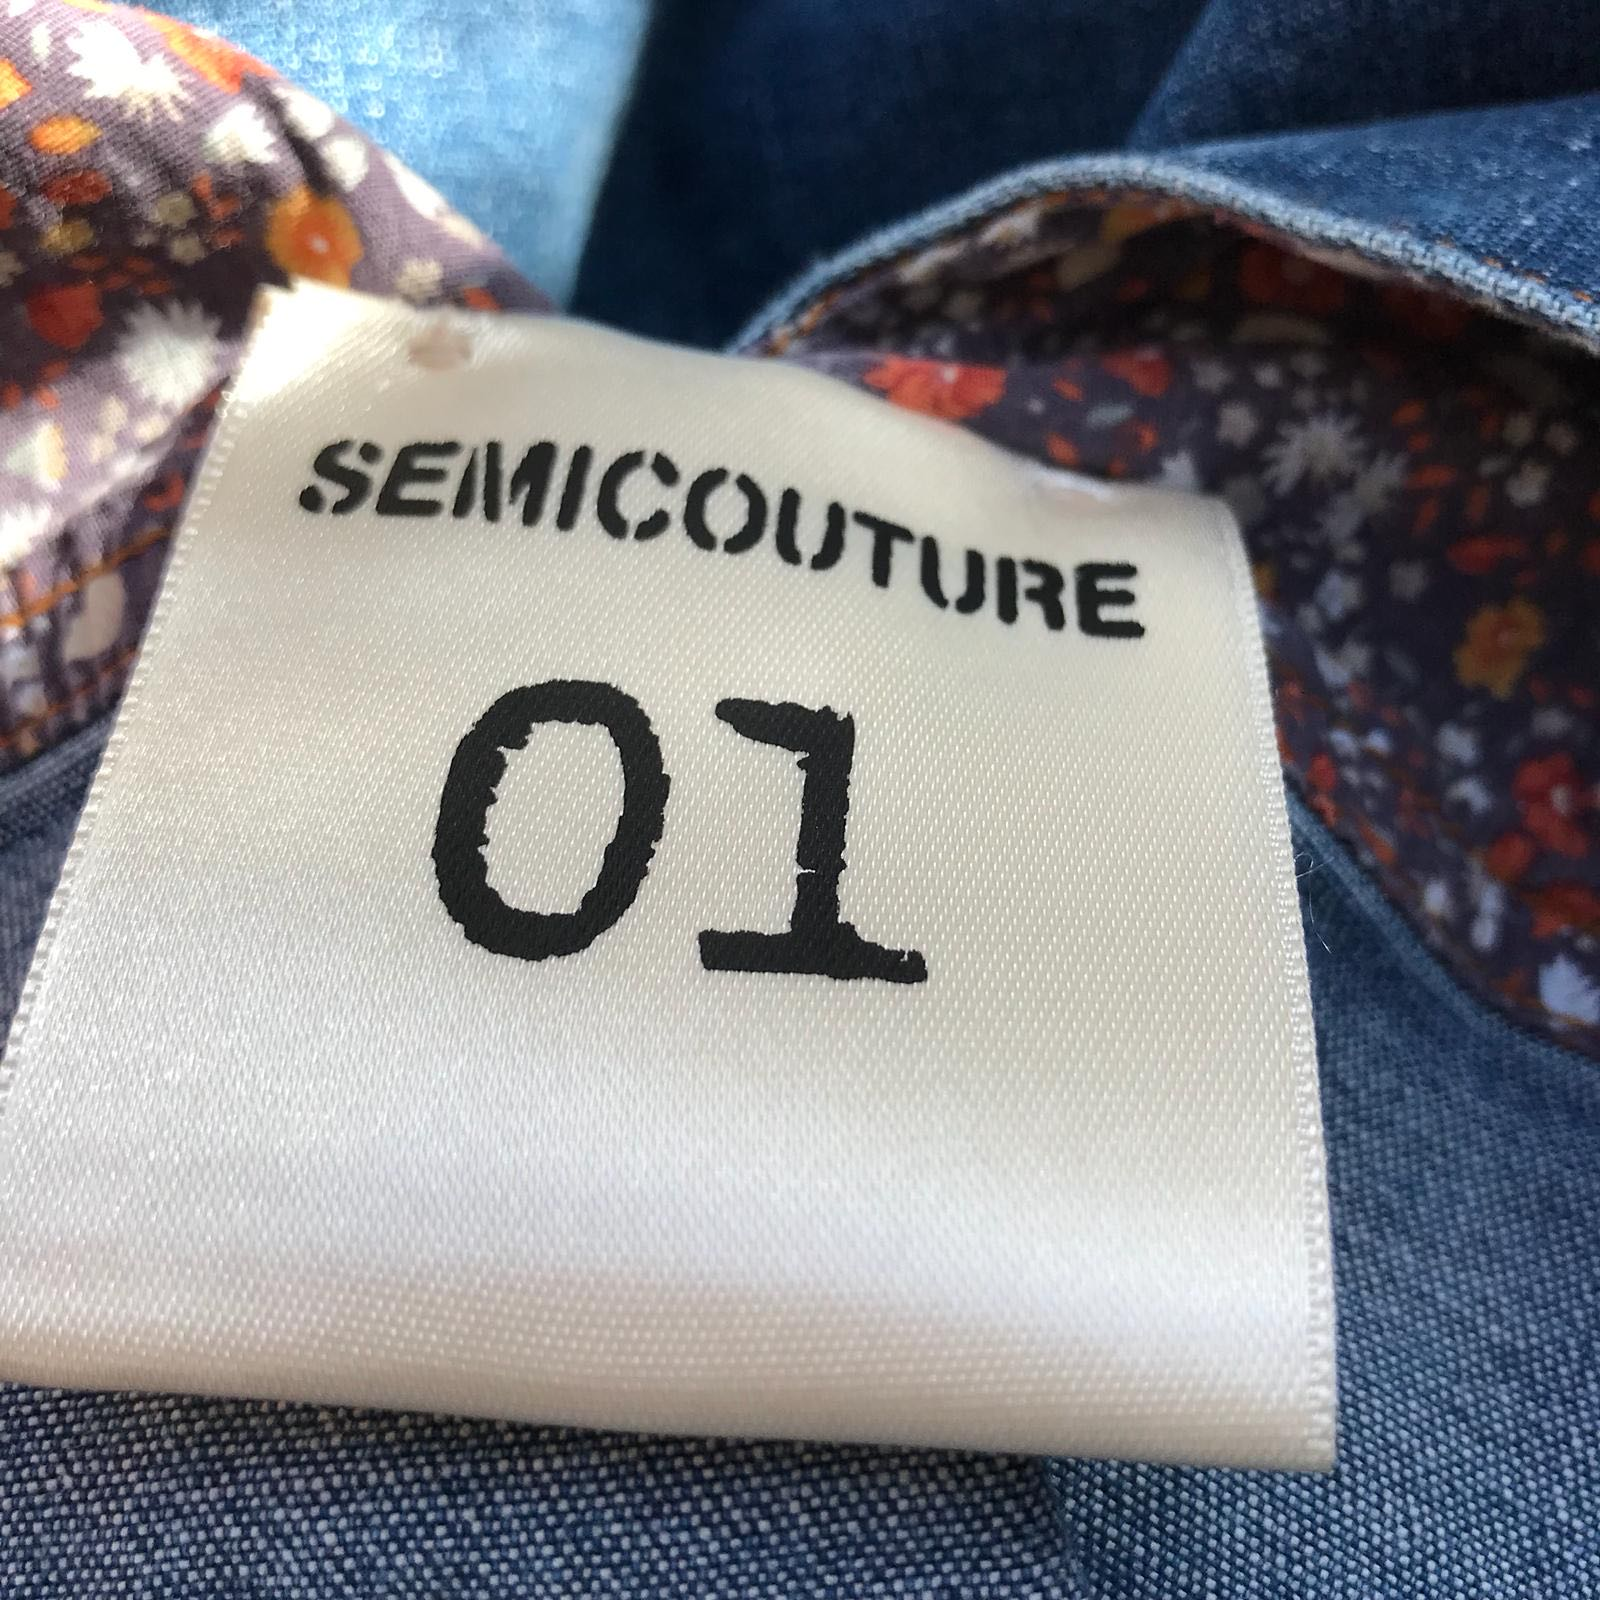 Top Semicouture T.40